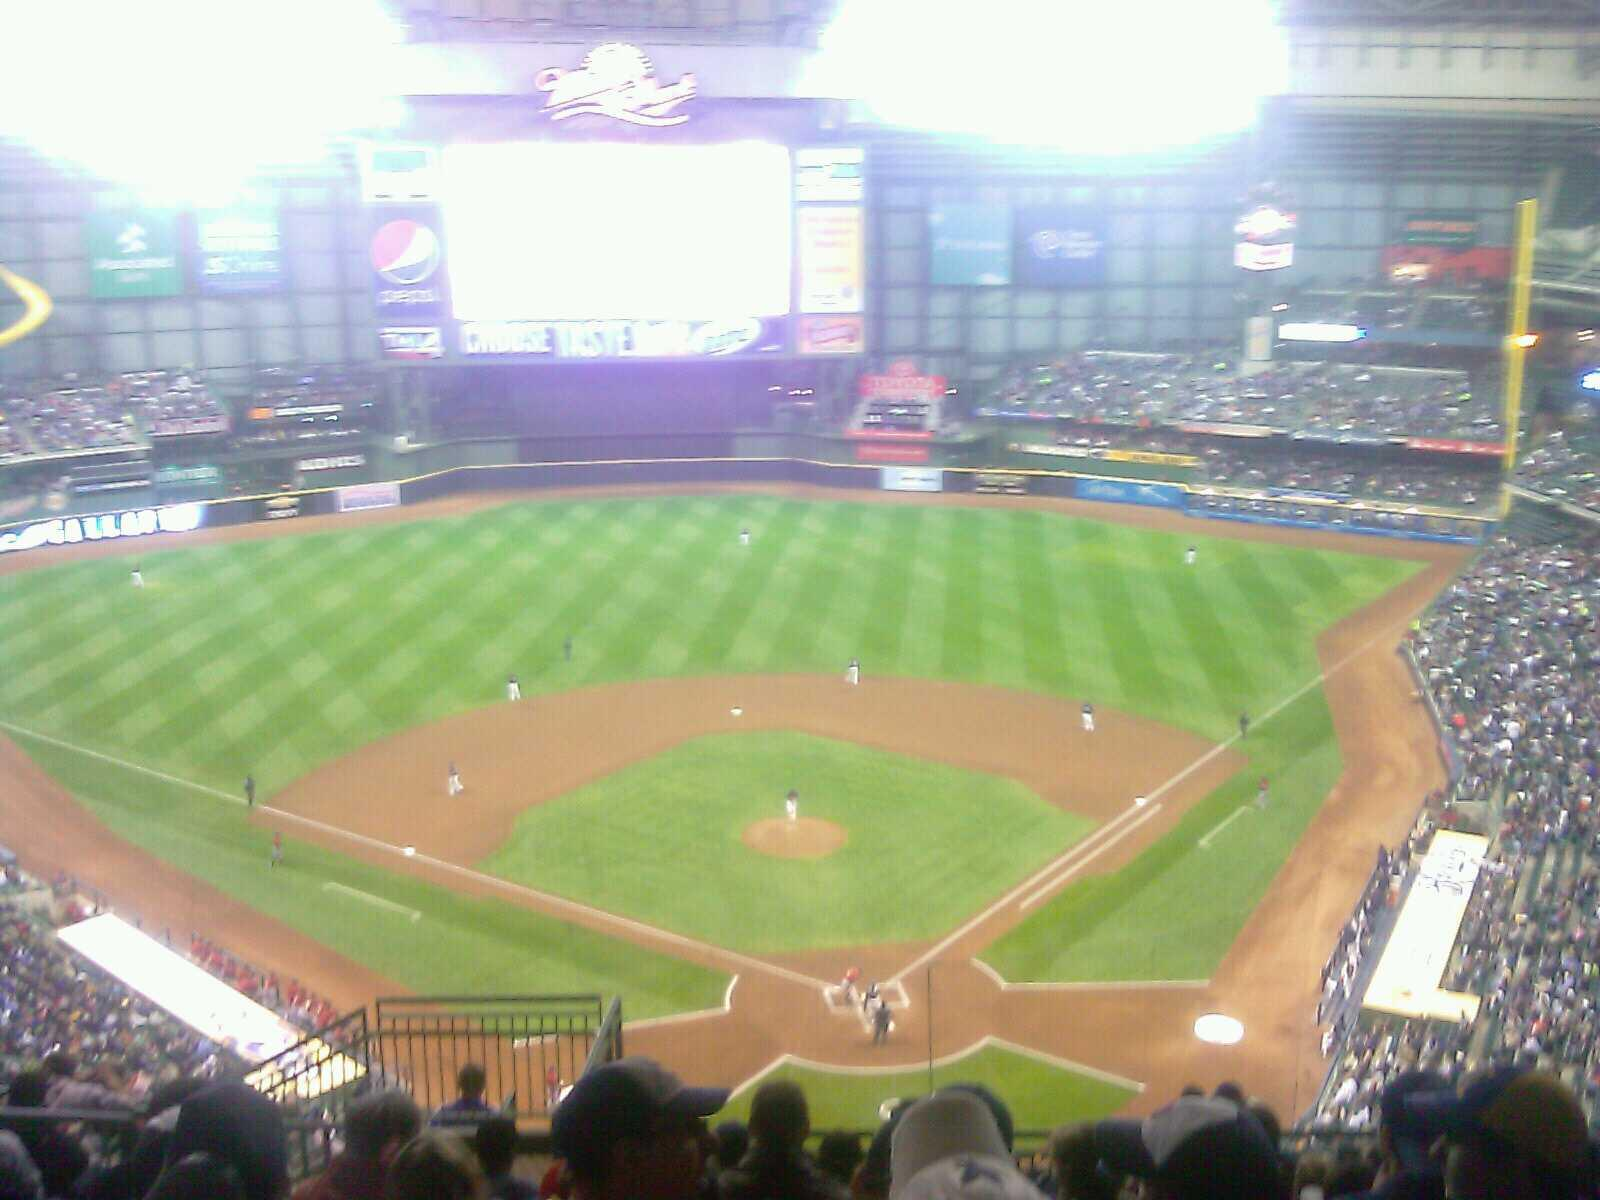 Miller Park Section 425 Row 25 Seat 8